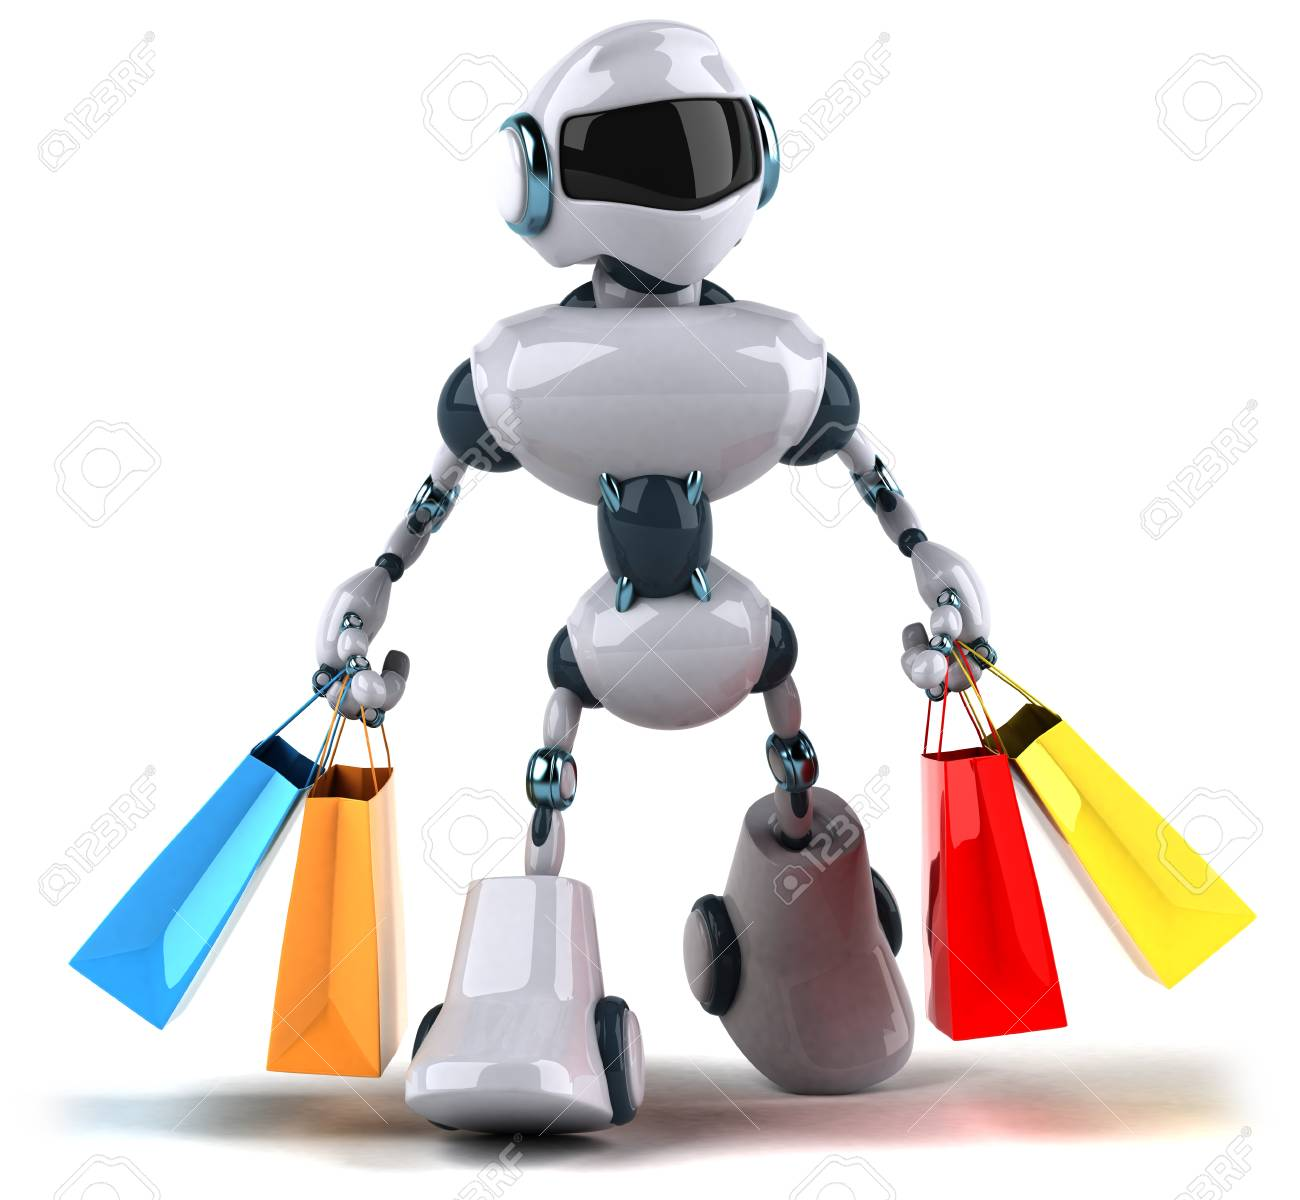 Image result for robot shopping